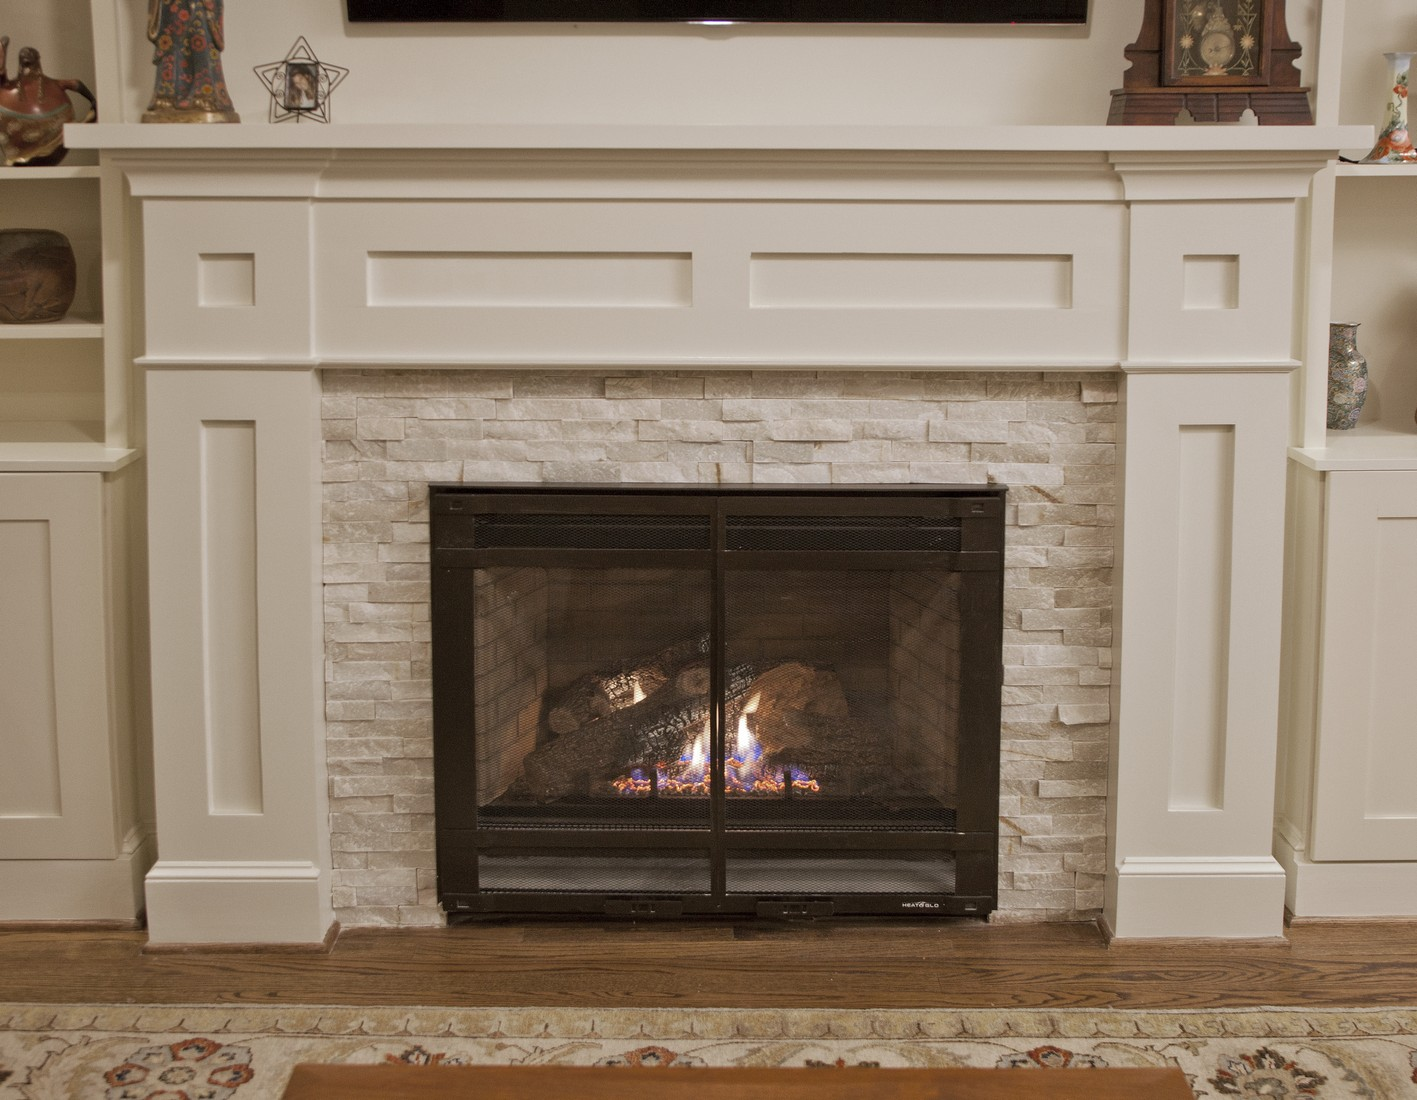 Gas Fireplace Starter Pipe Vent Free Gas Fireplaces Are They Safe Homeadvisor